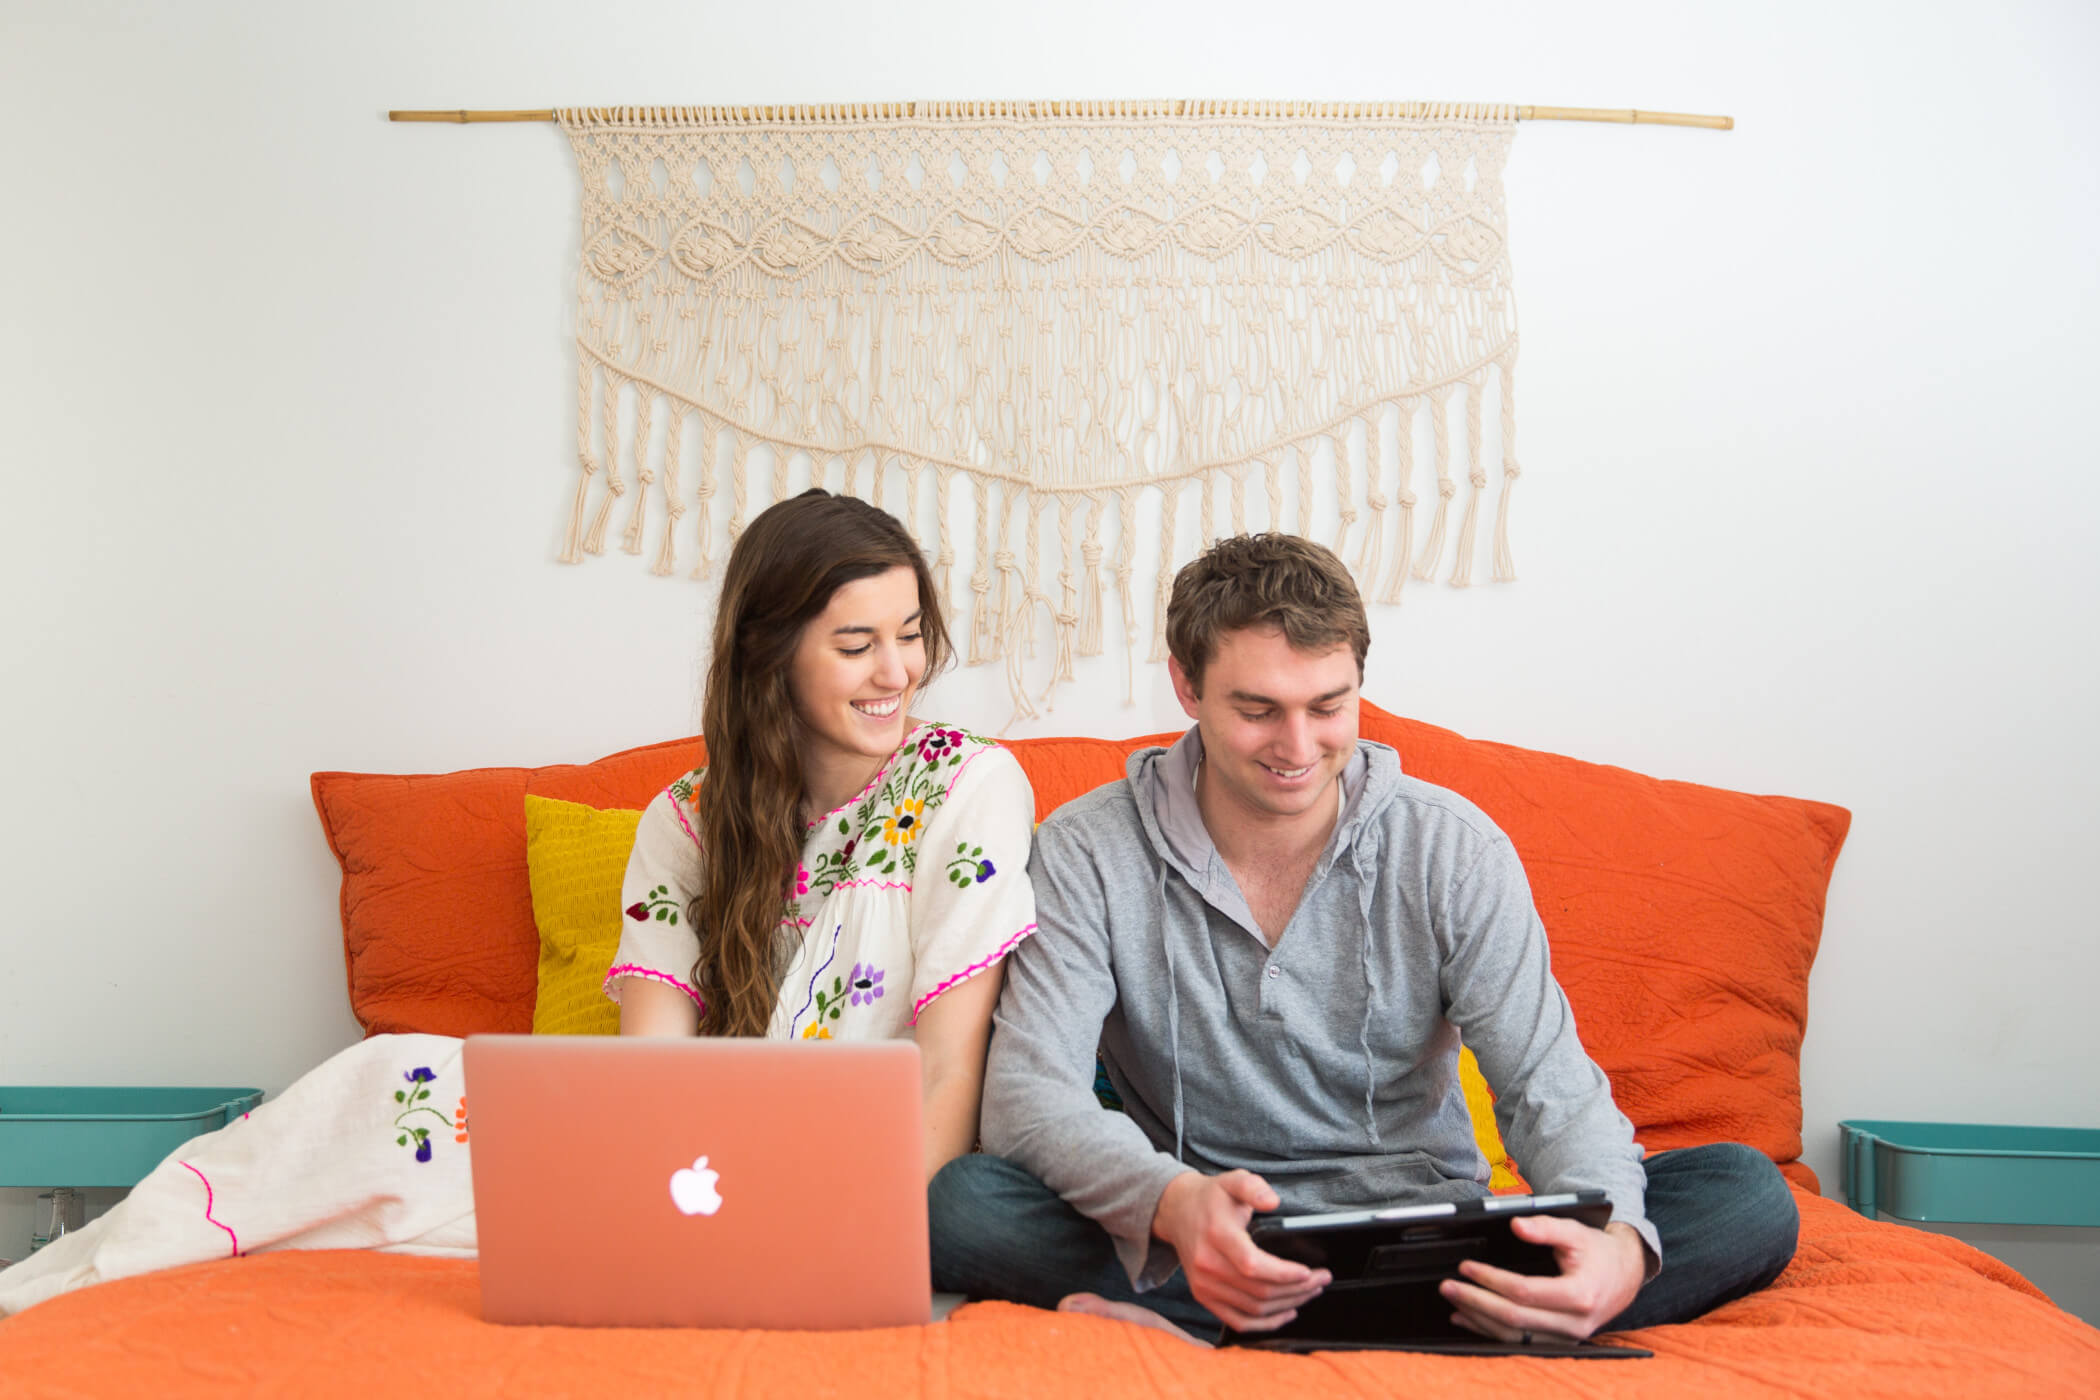 What to Consider When House Hunting with a Partner